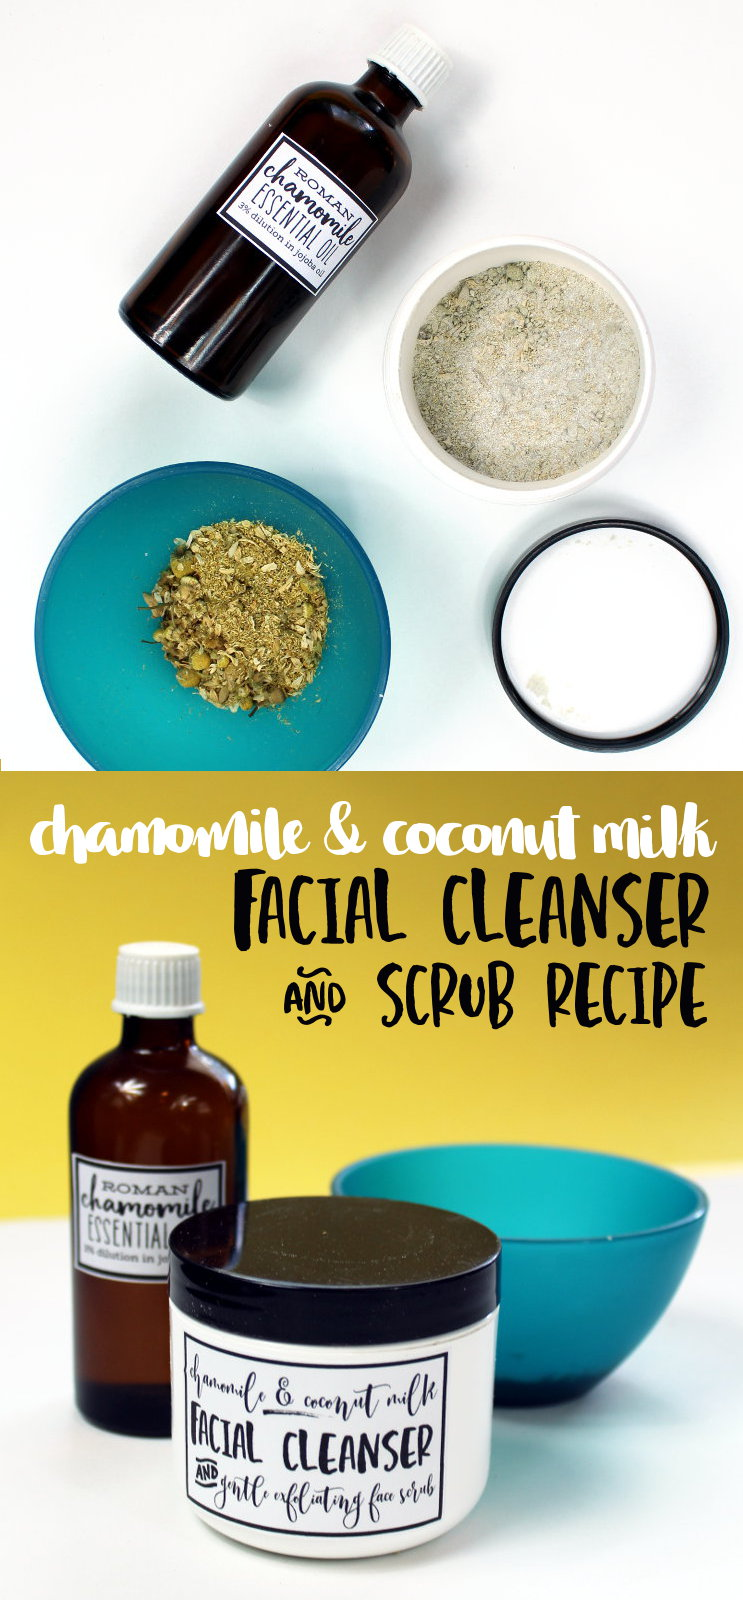 Coconut Milk Facial Cleanser Recipe! Looking for a vegan facial cleanser that's both gentle on skin and easy to customize? Then give my new chamomile & coconut milk facial cleanser recipe a try! Made with soothing chamomile, coconut milk and colloidal oatmeal, this easy facial cleanser and scrub gently exfoliates with bamboo extract for a healthy looking complexion!